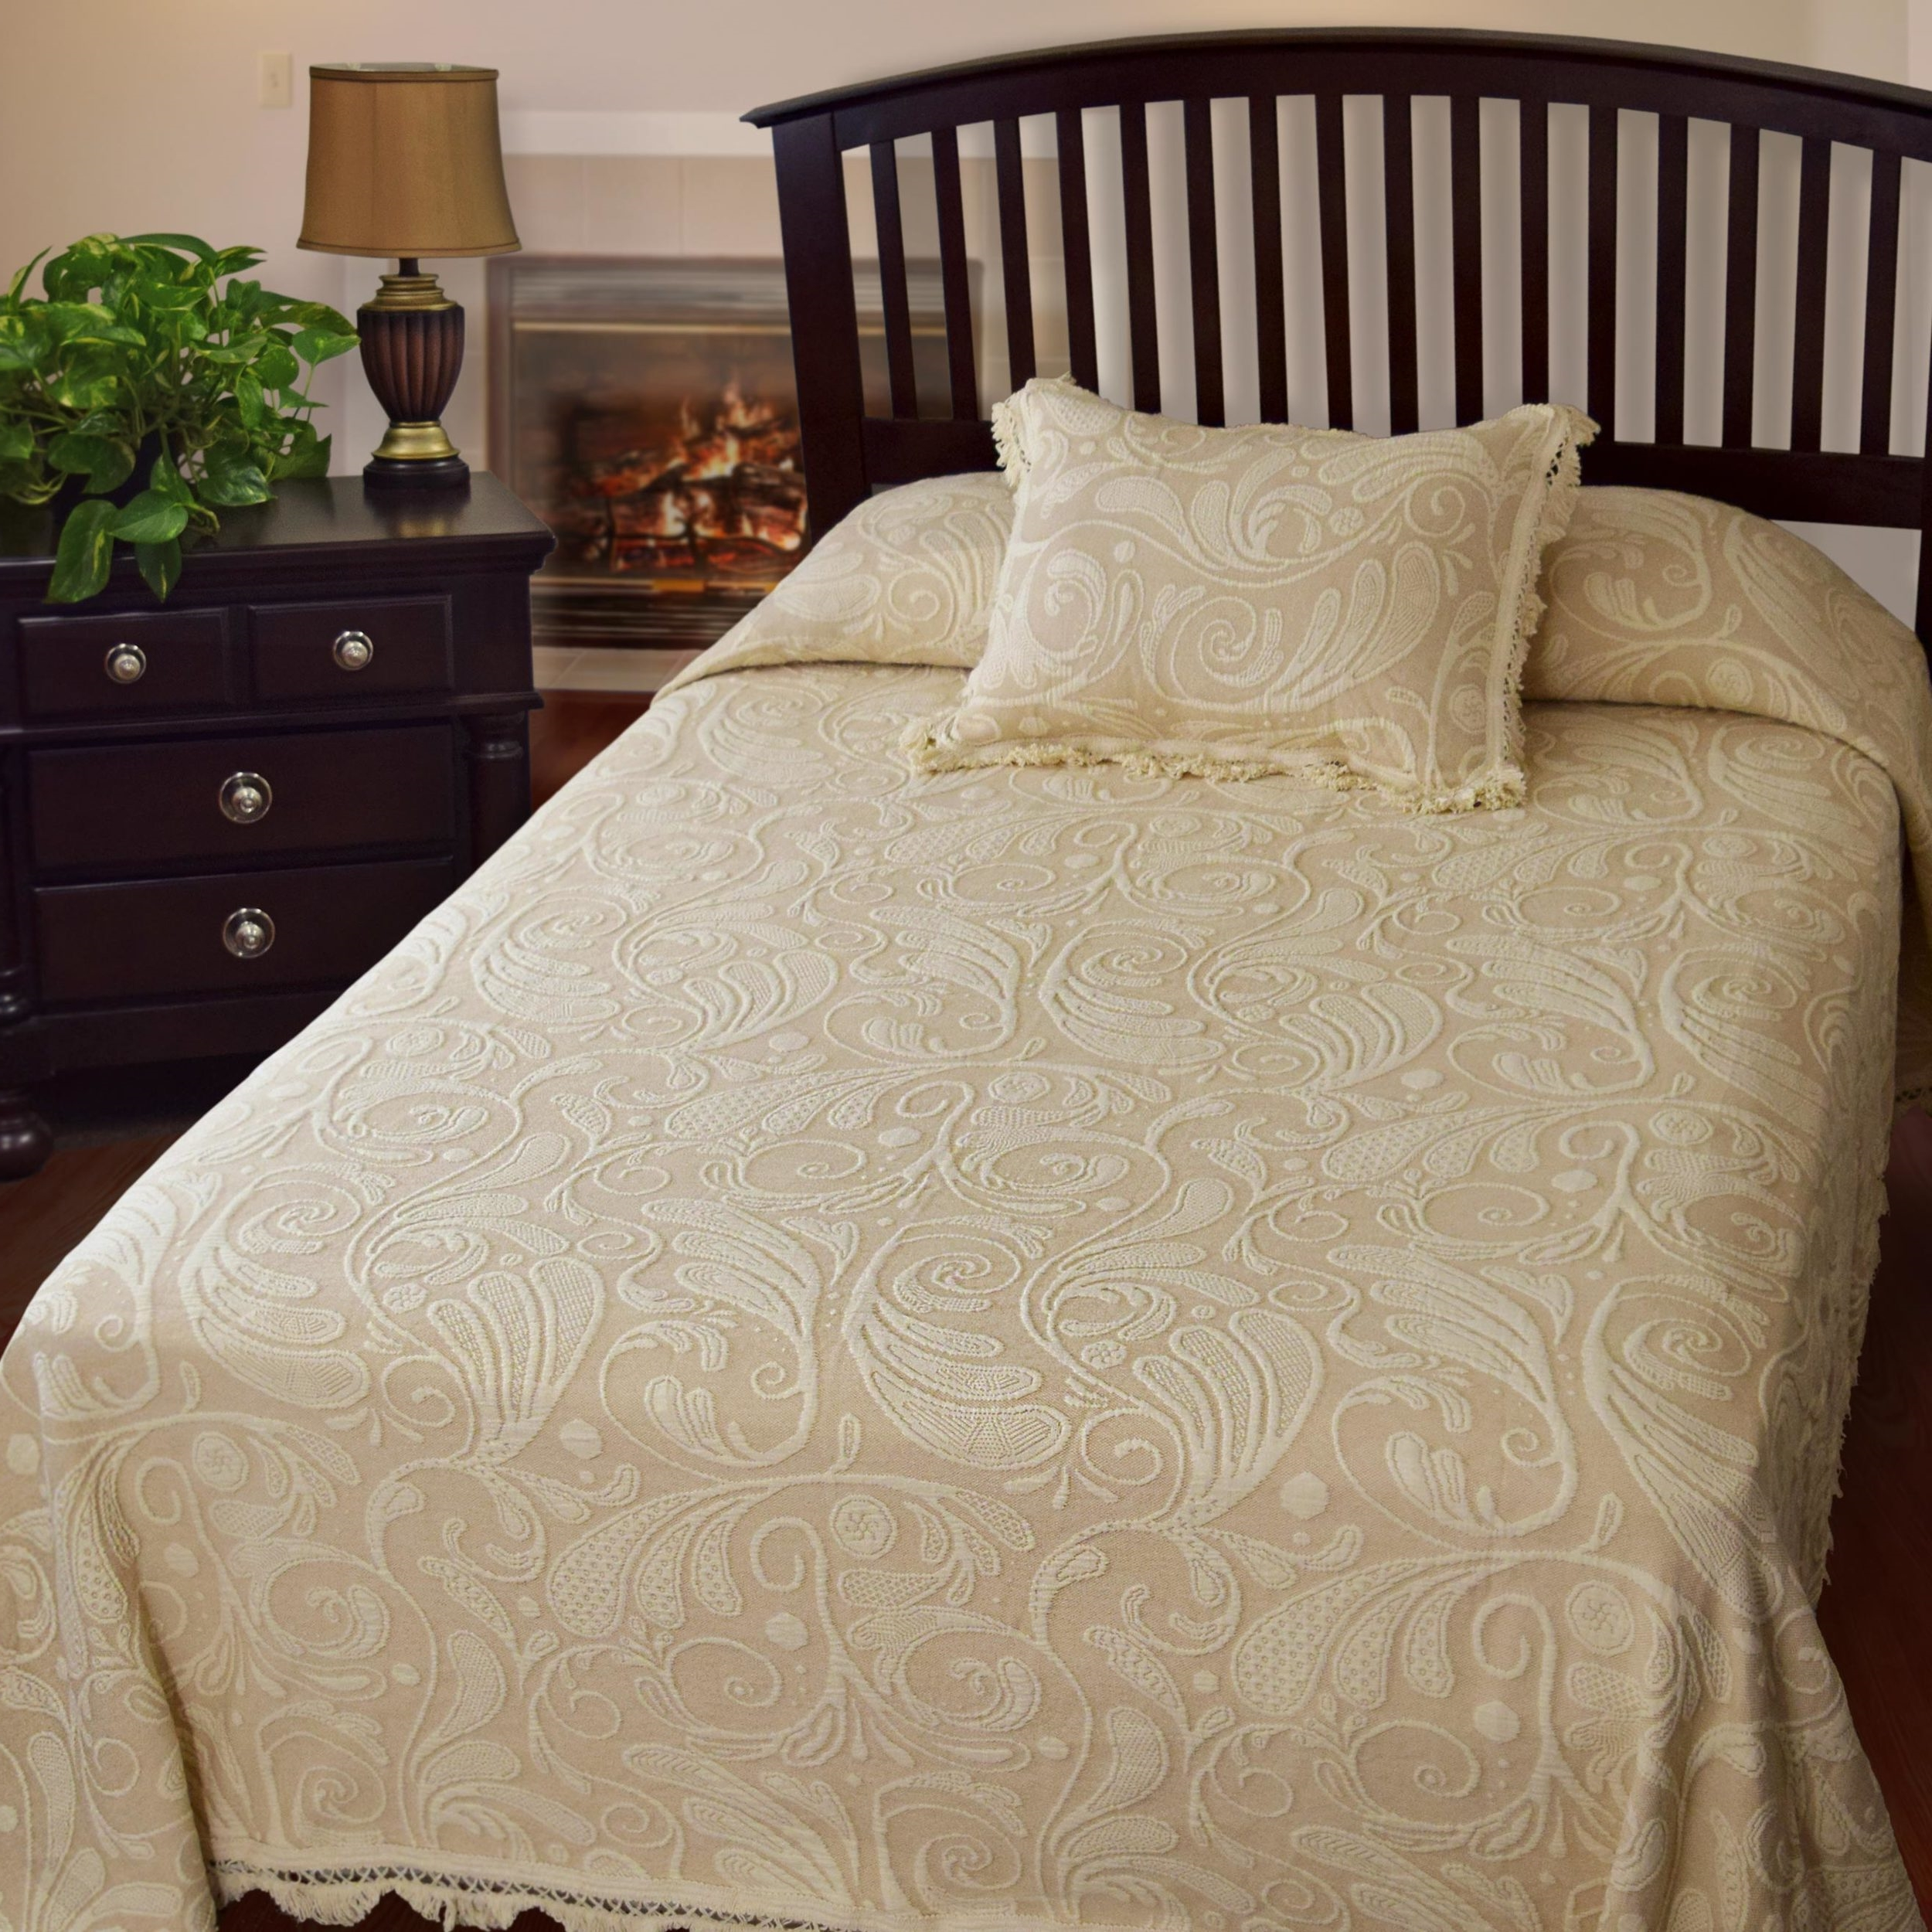 Dyer's Wynd Bedspread (Click Image to Enlarge)